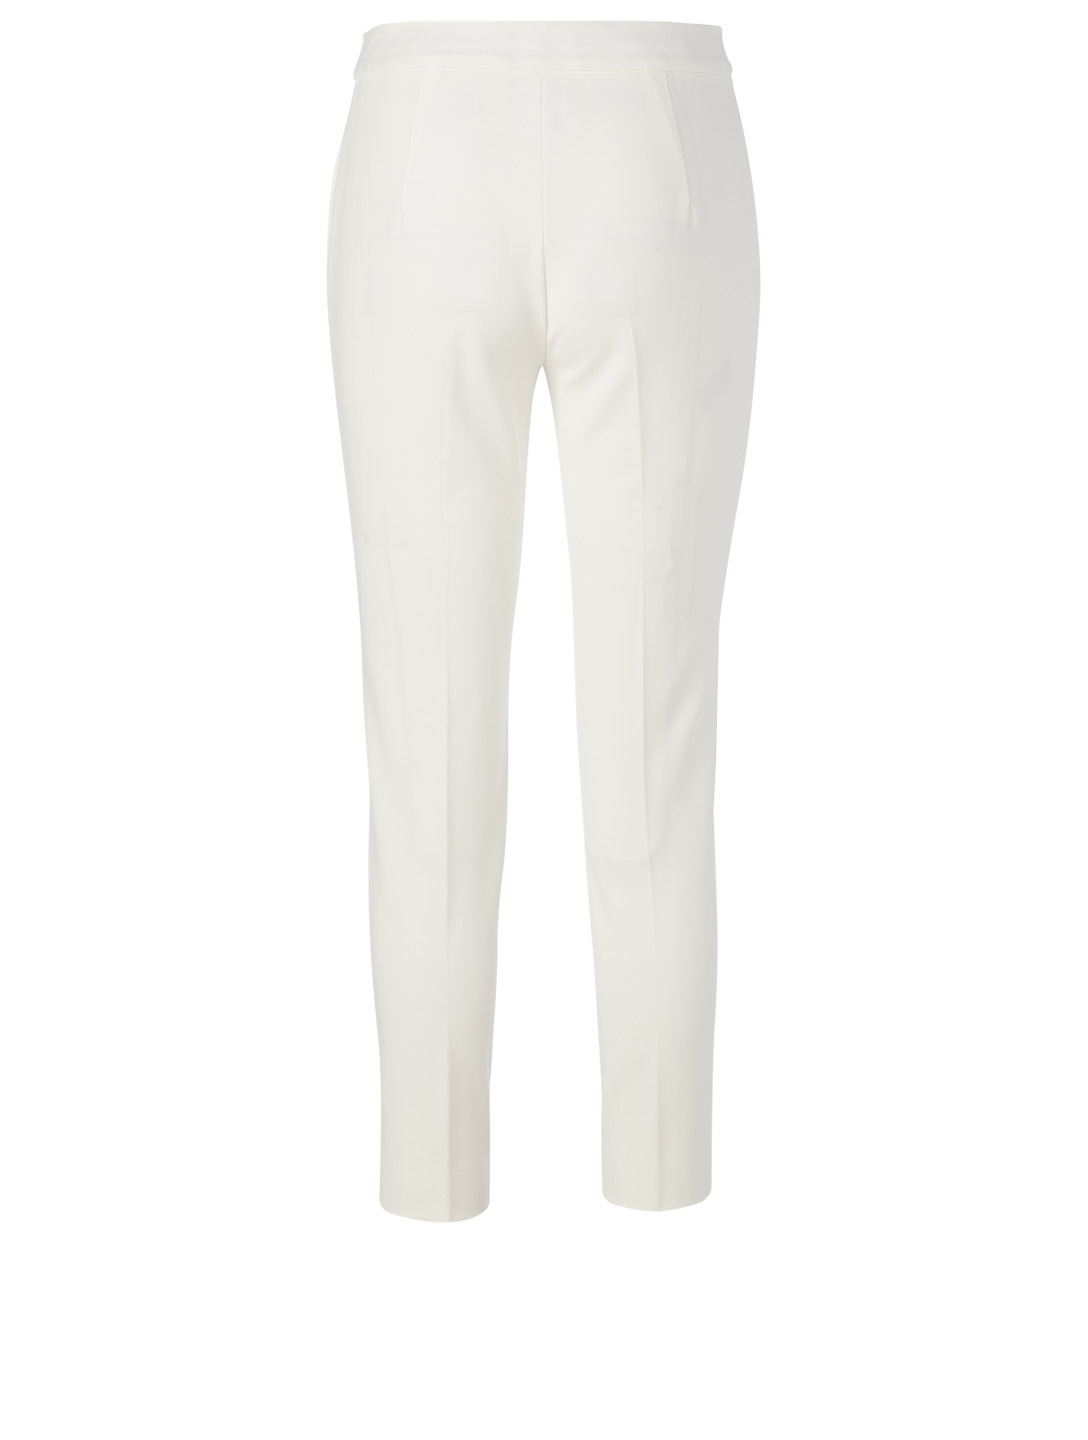 MAX MARA Pegno Slim Pants Women's White